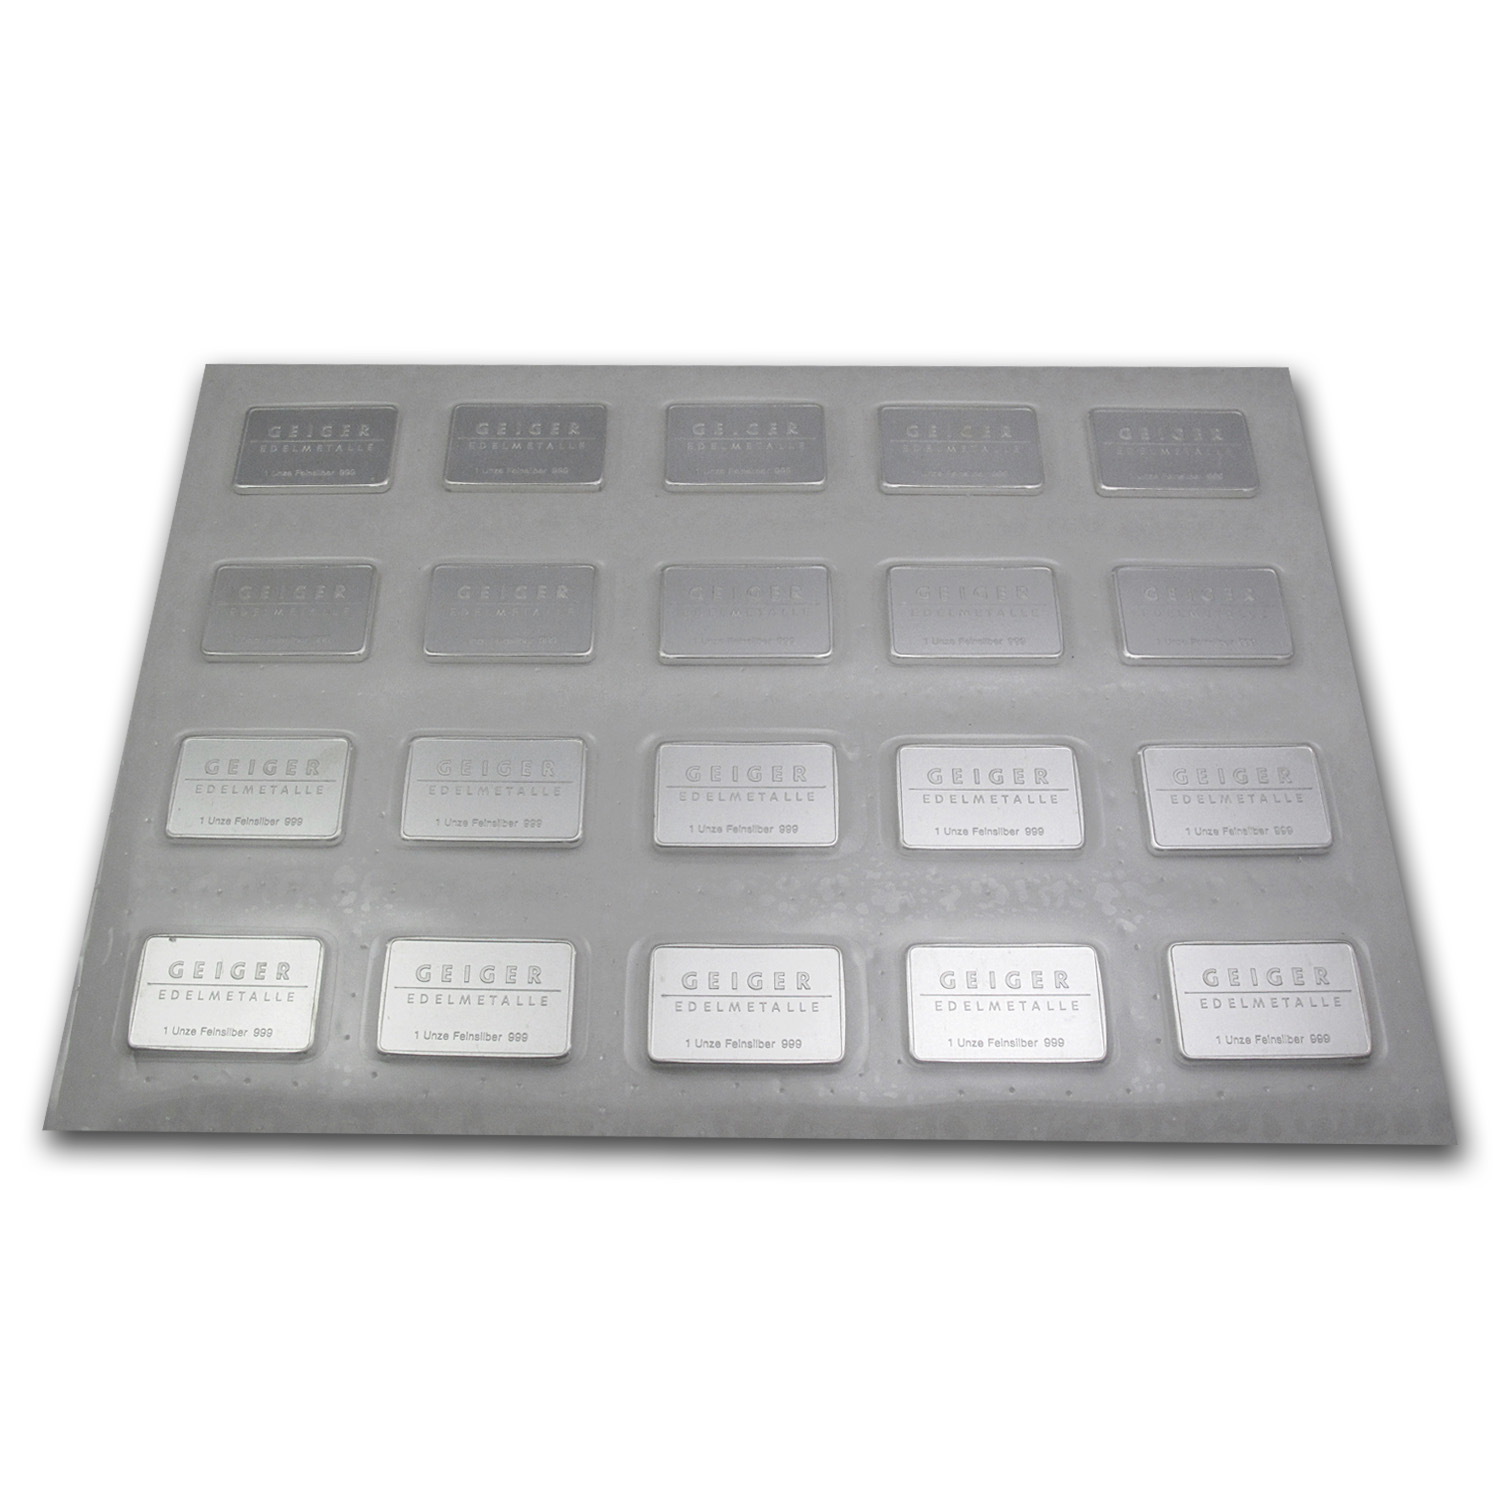 1 oz Silver Bar - Geiger (Security Line Series)